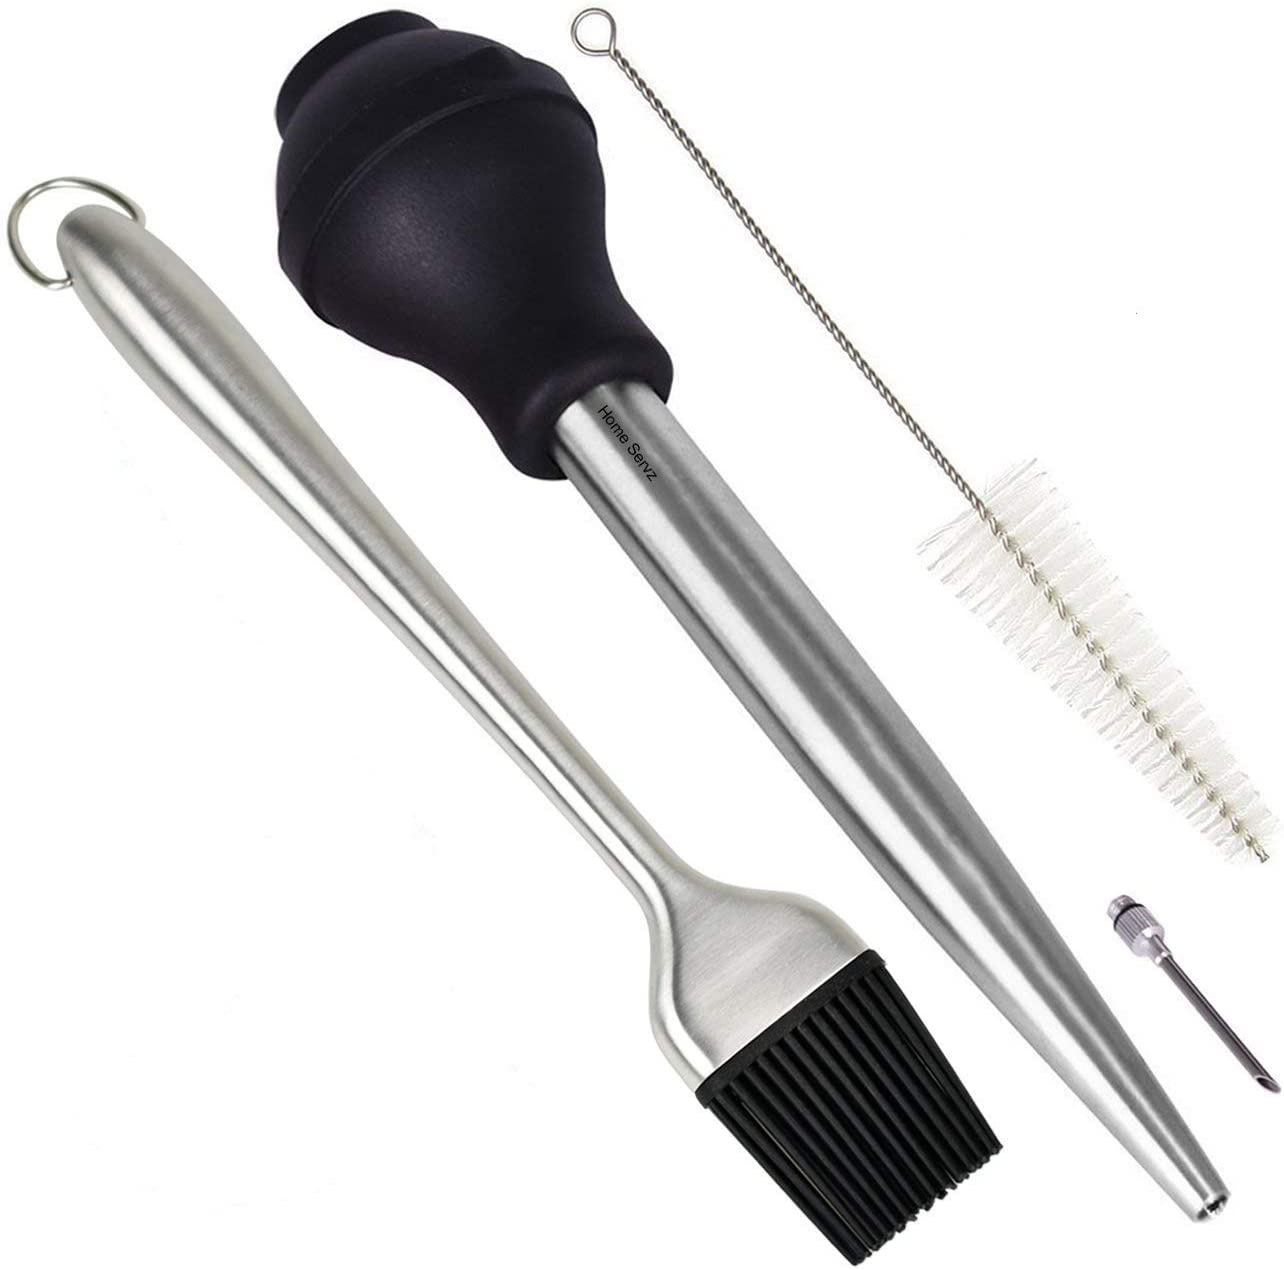 Home Servz 304 Stainless Steel Turkey Baster Syringe - Injector Needle with Cleaning Brush - Food Grade Silicone Bulb & 12 Inch Stainless Steel Handle Silicone BBQ Basting Brush